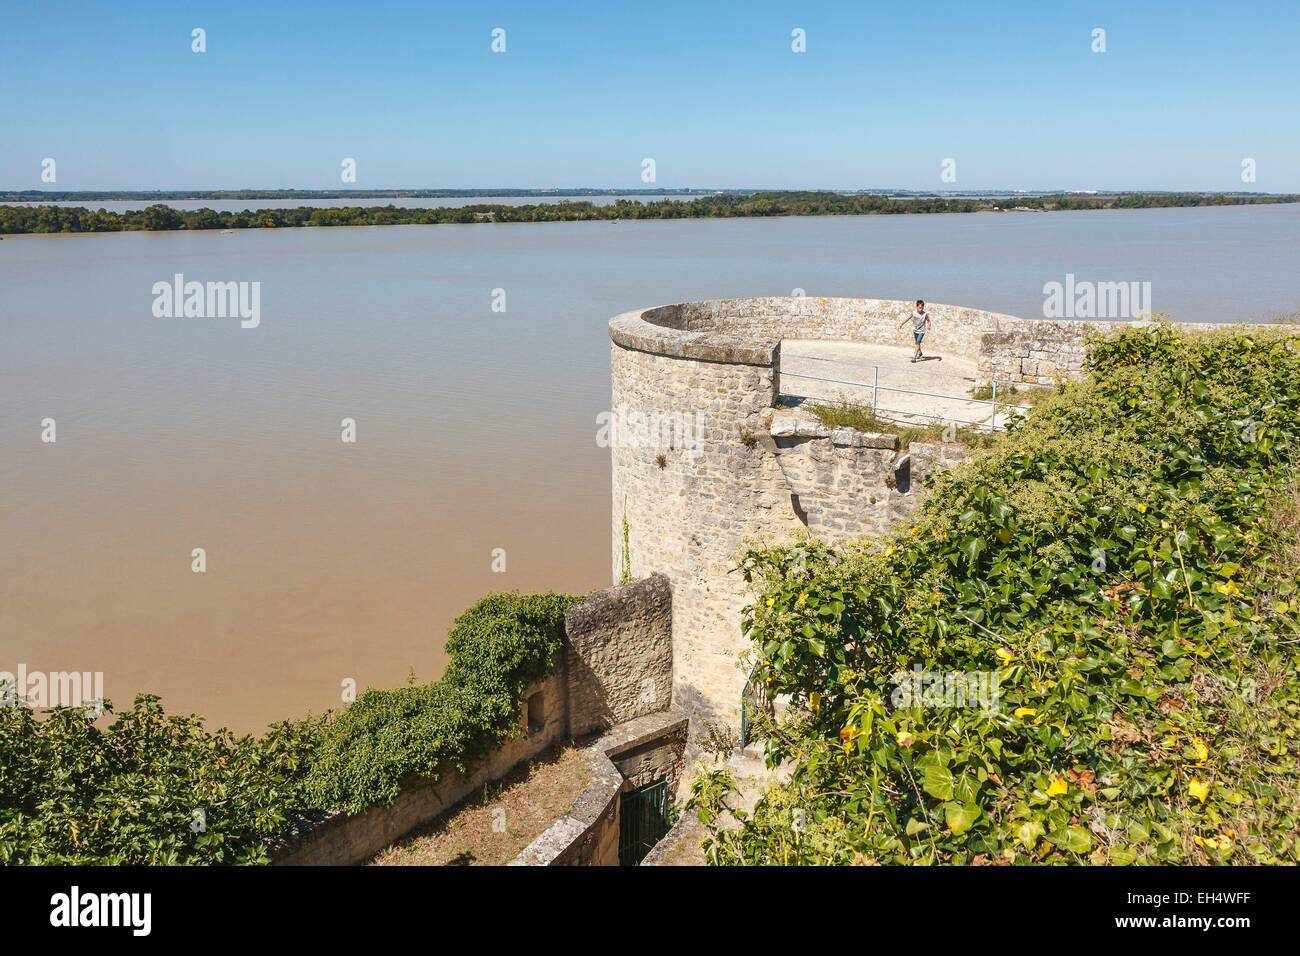 France, Gironde, Blaye, the Citadelle, l'Eguillette tower, the Gironde river and l'Ile Nouvelle, Fortifications - Stock Image